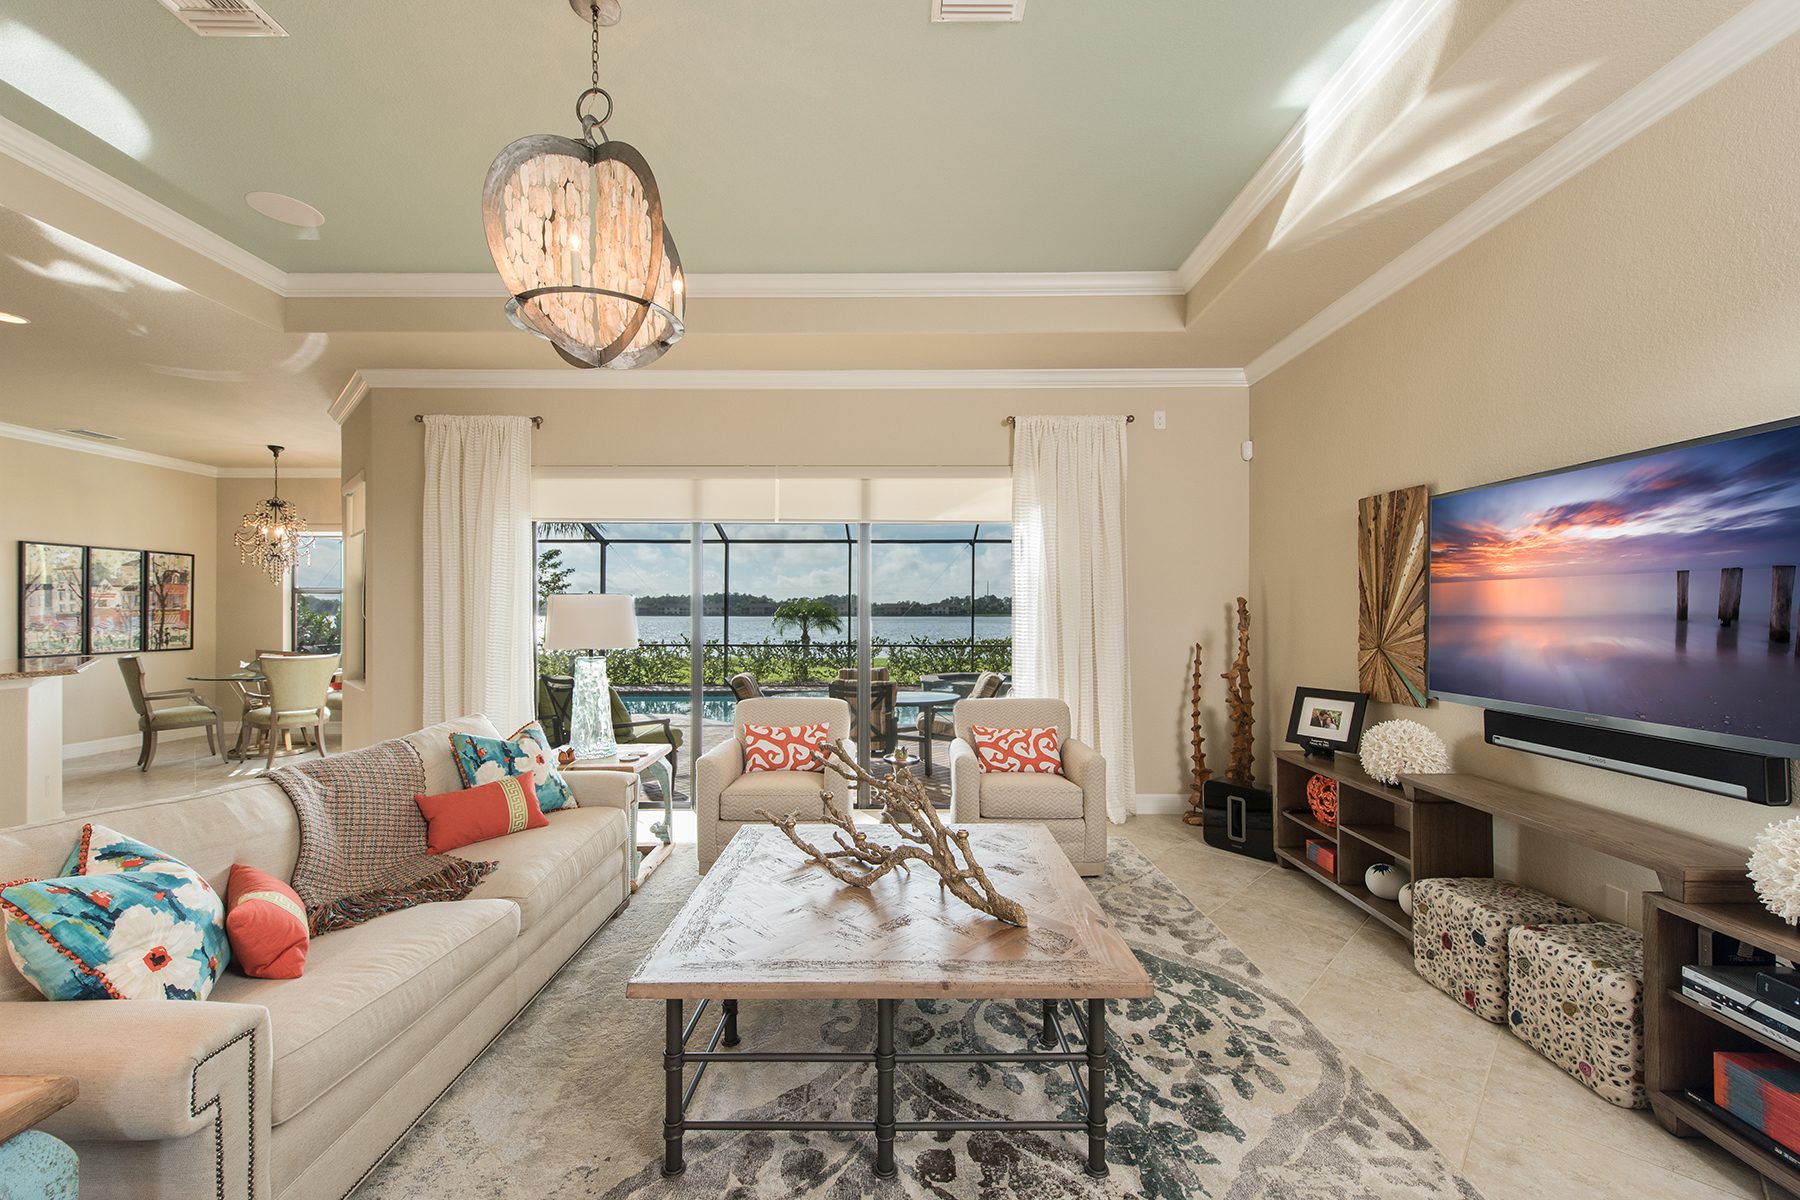 Single Family Home for Sale at 10050 Biscayne Bay Ln , Naples, FL 34120 10050 Biscayne Bay Ln Naples, Florida 34120 United States